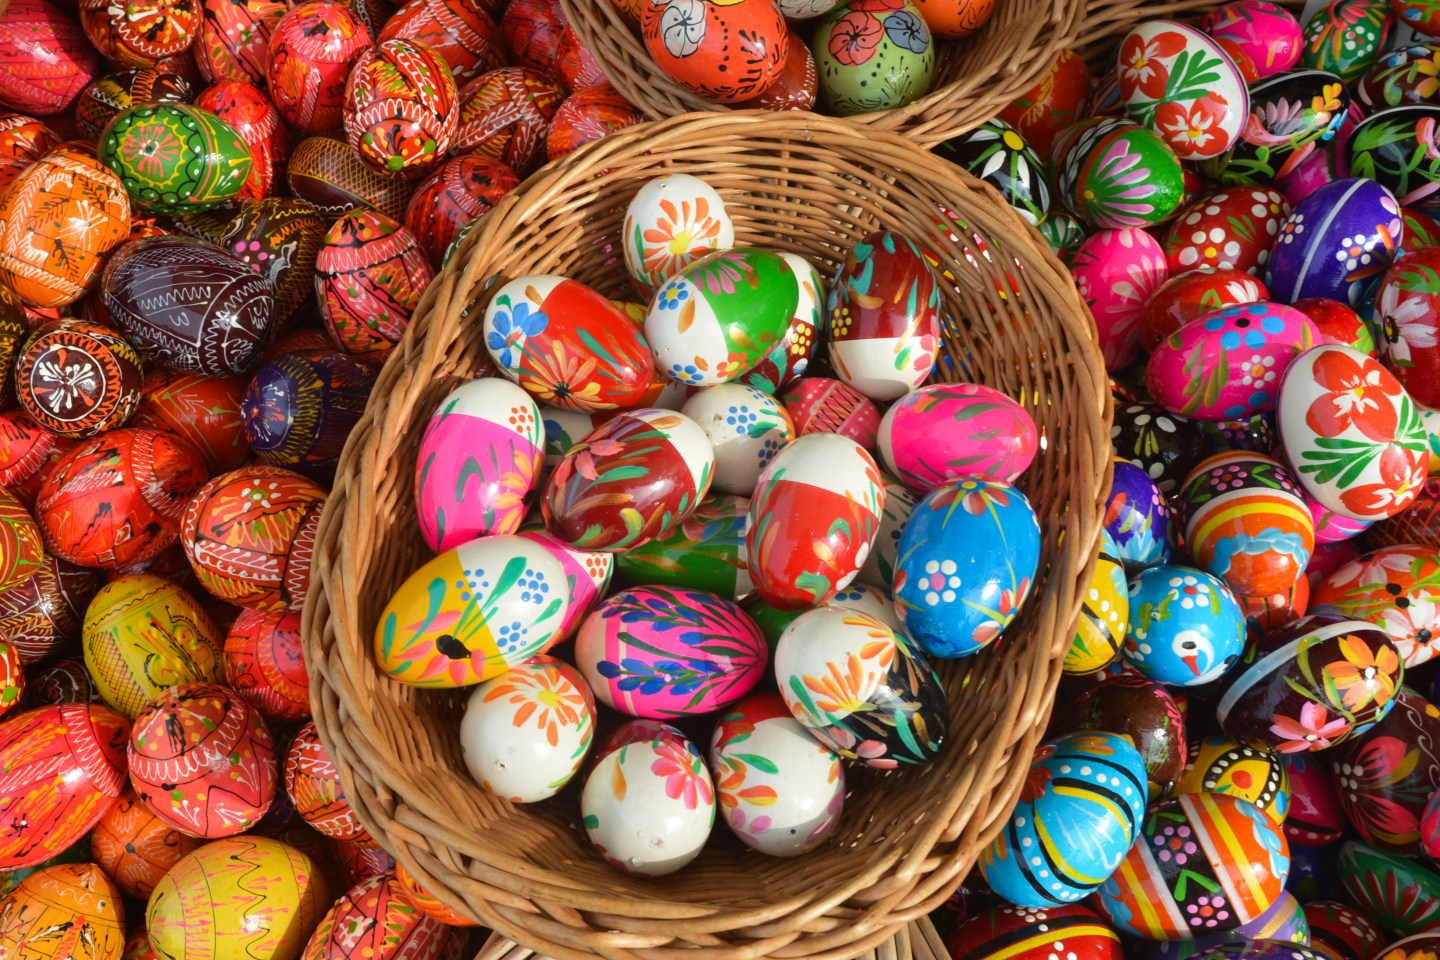 Annual Traditional Easter Market in Krakow